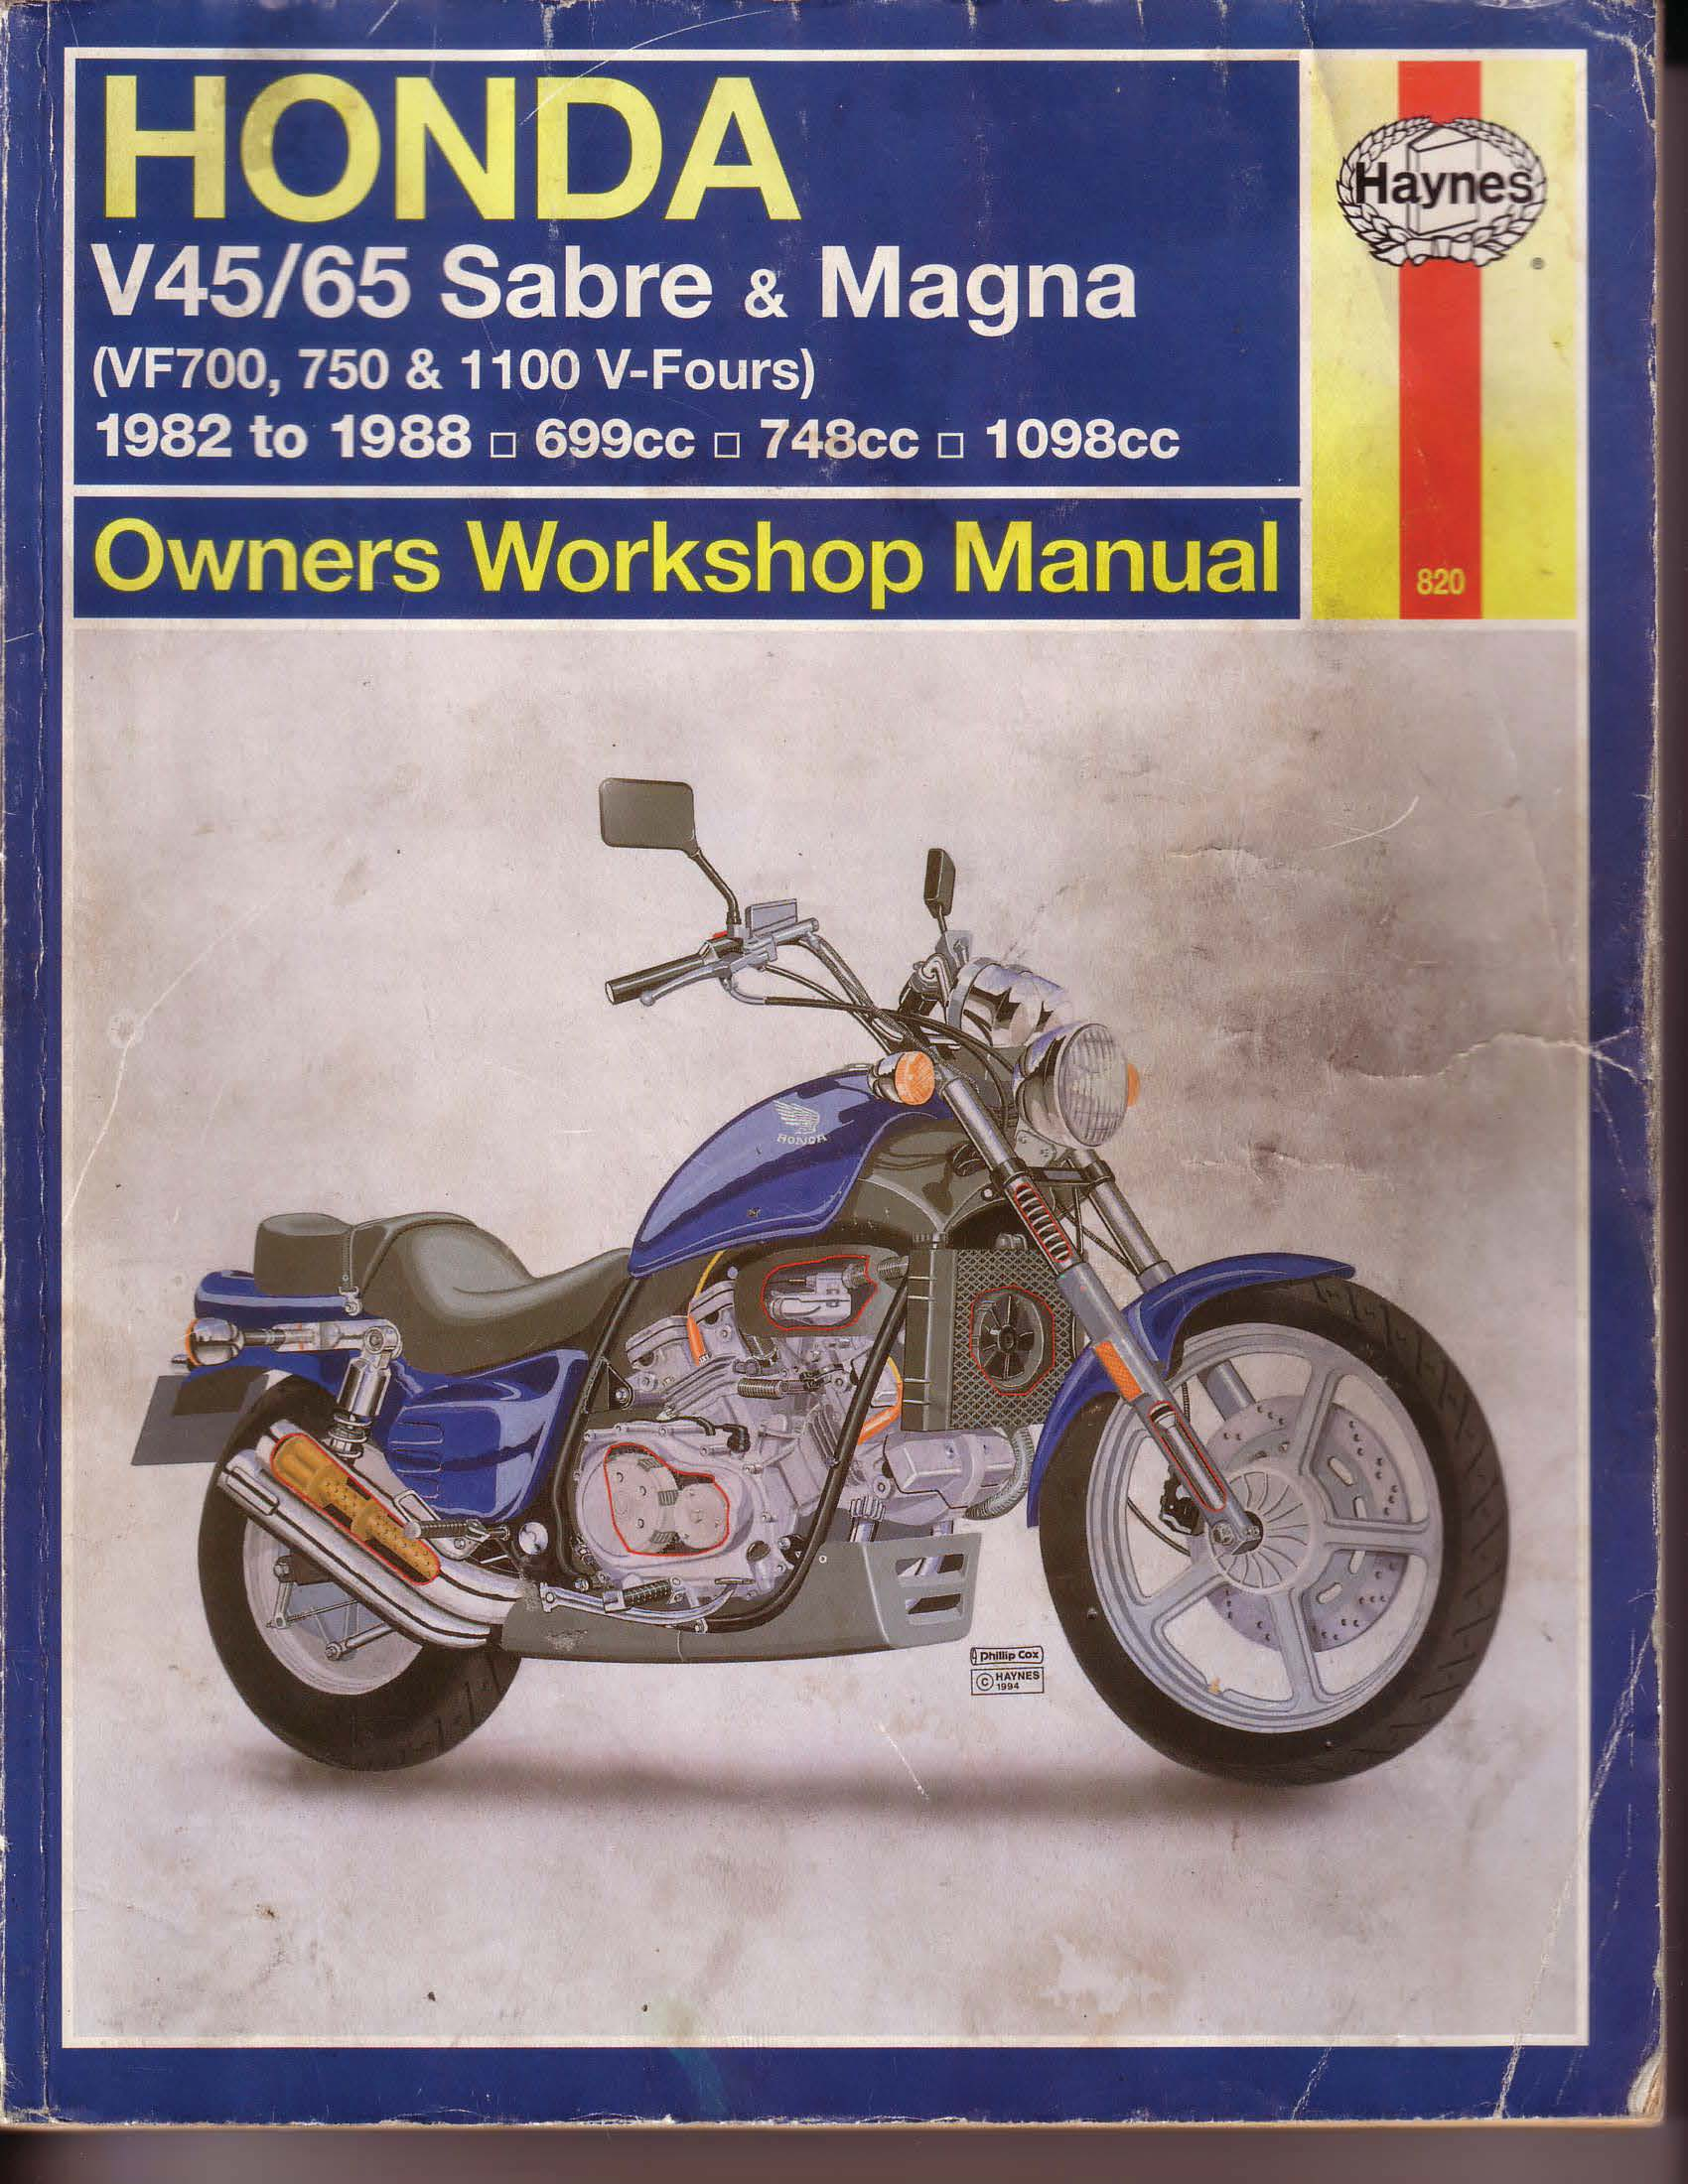 workshopmanual vf700 sabre magna 1982 1988 20062017 1456